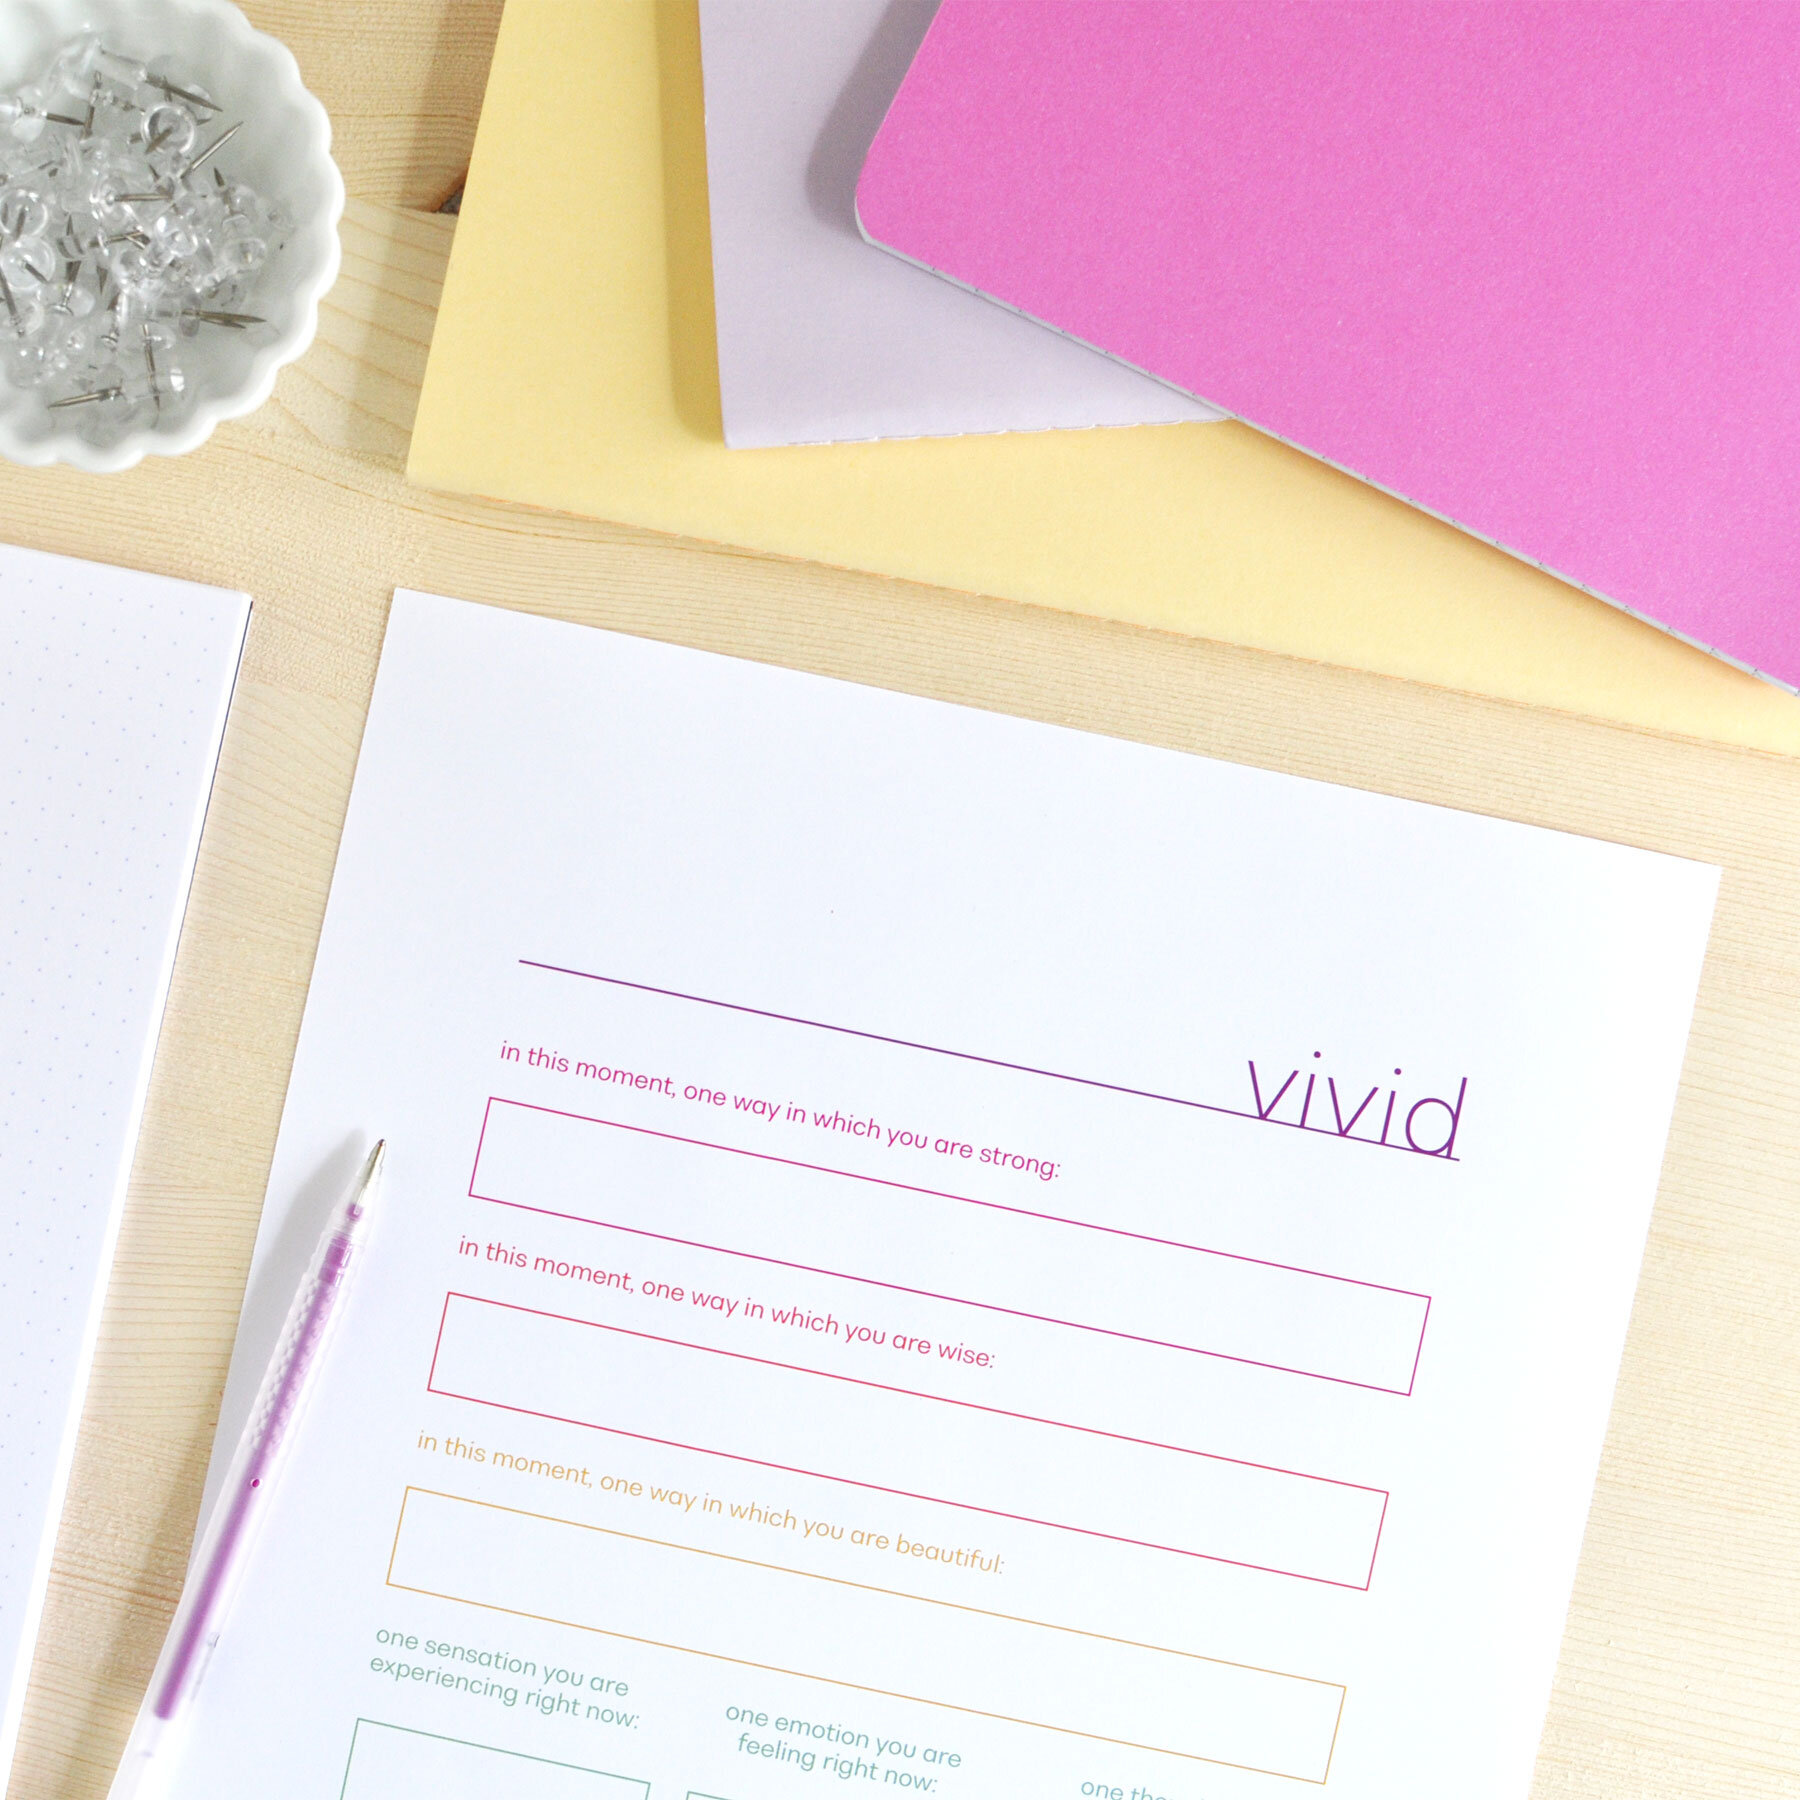 23-09-2019-Vivid-Printable-Journal-Page-by-Christie-Zimmer.jpg